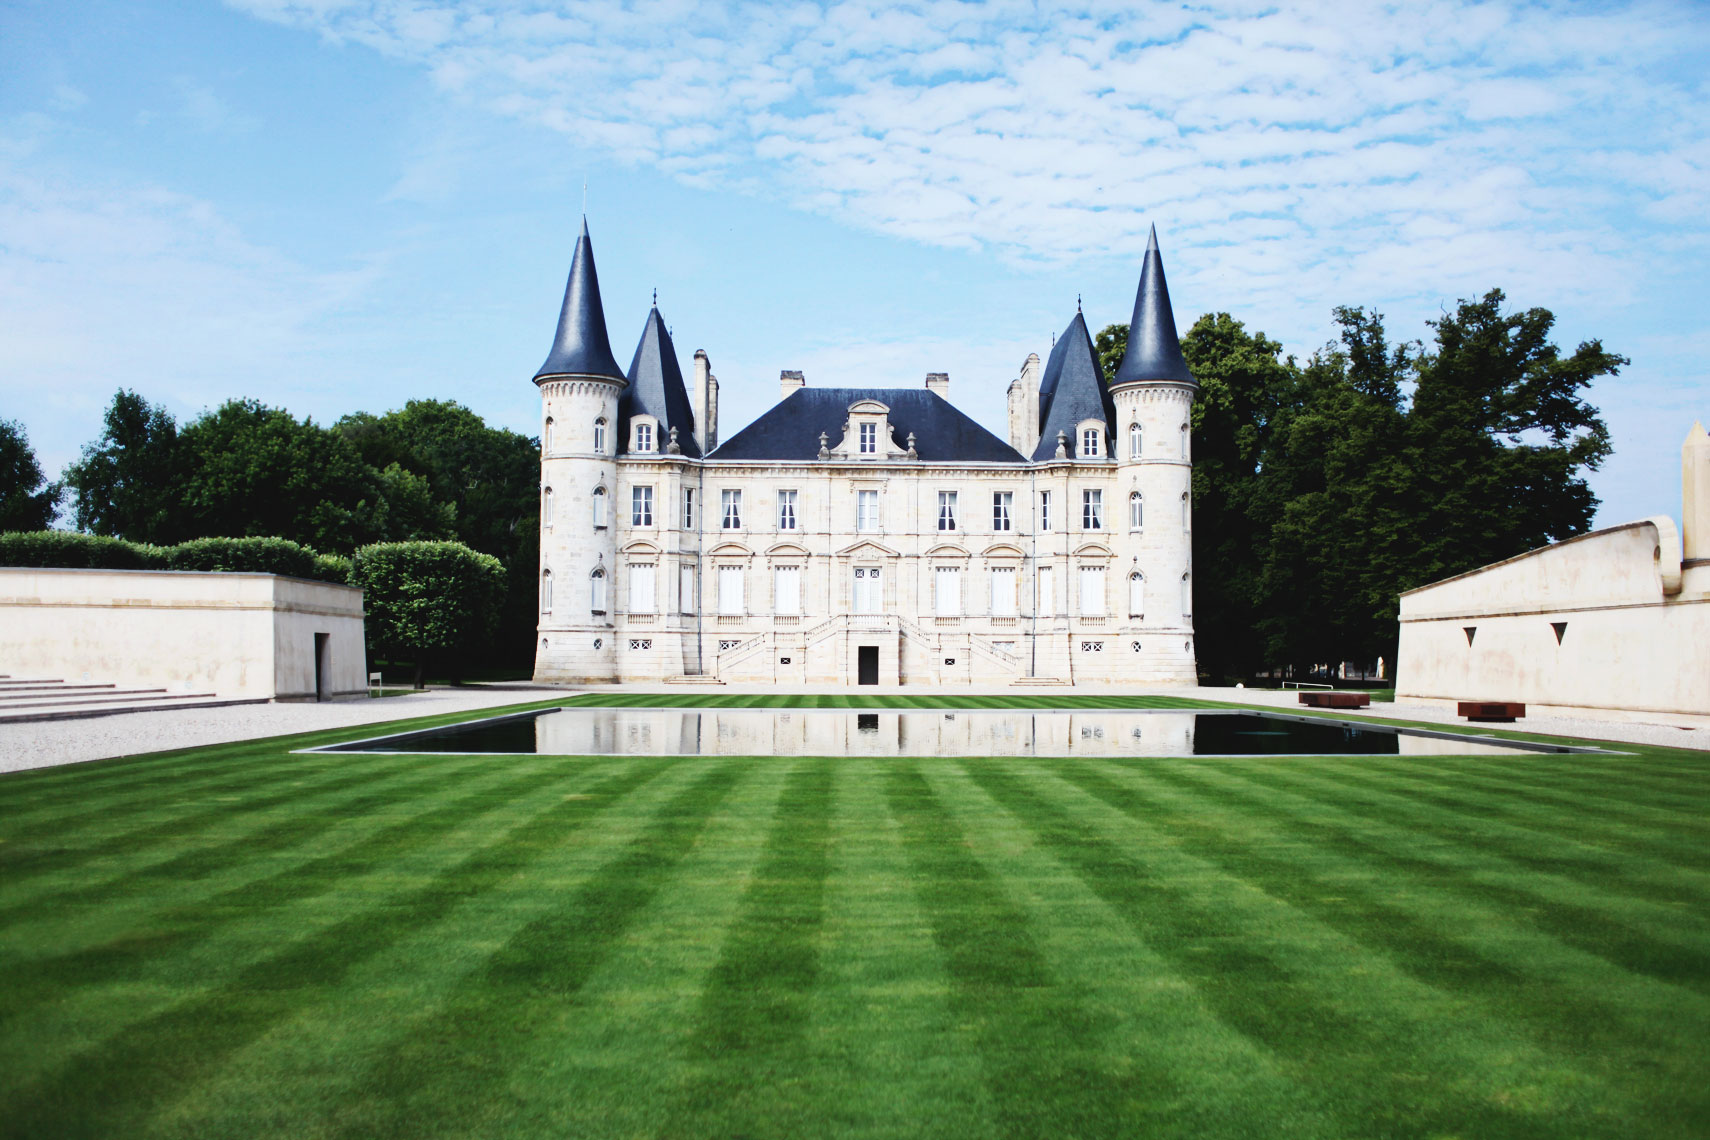 peggy-wong-photography_pwtravelogue_9675_chateau-pichon-baron_bordeaux_france